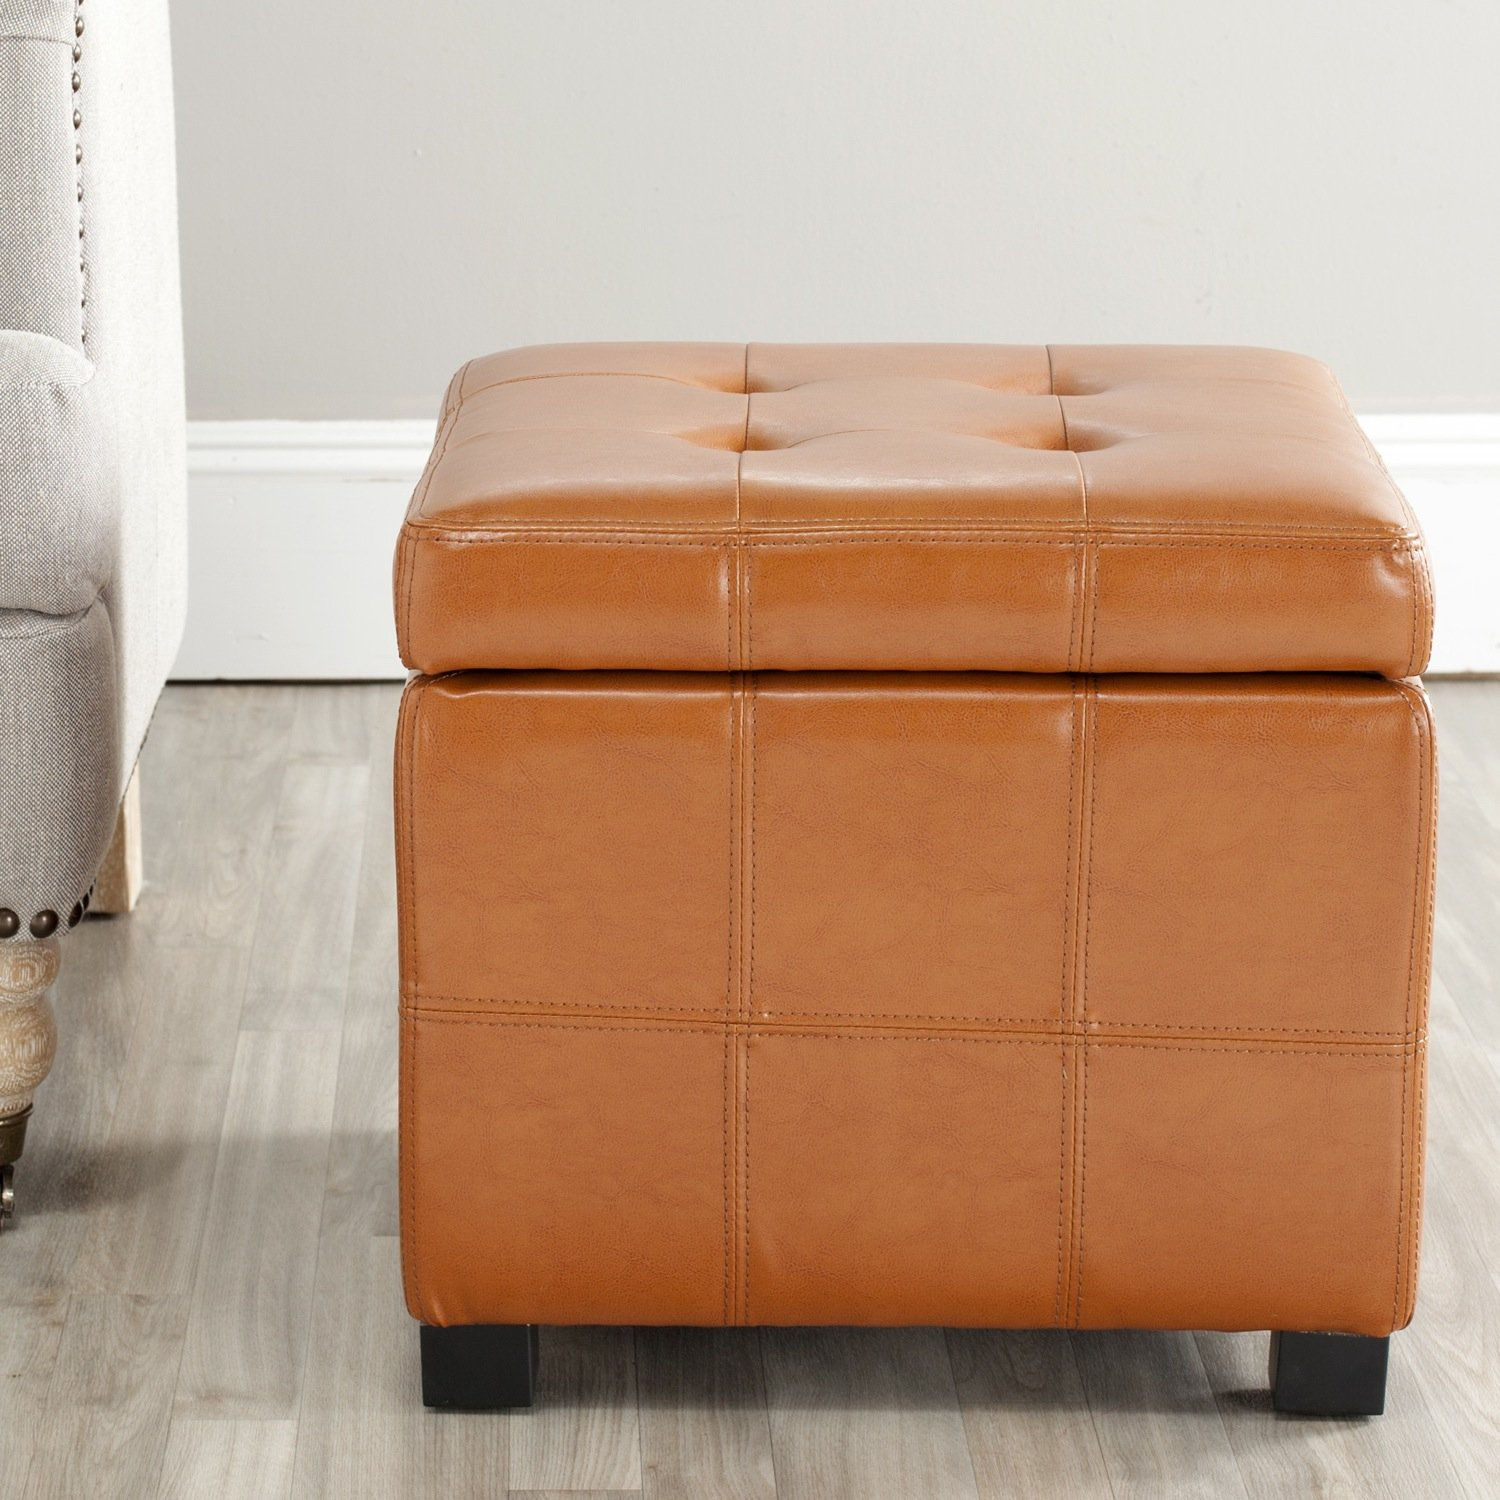 Amazon.com: Safavieh Hudson Collection Noho Tufted Saddle Leather Square Storage  Ottoman: Kitchen U0026 Dining